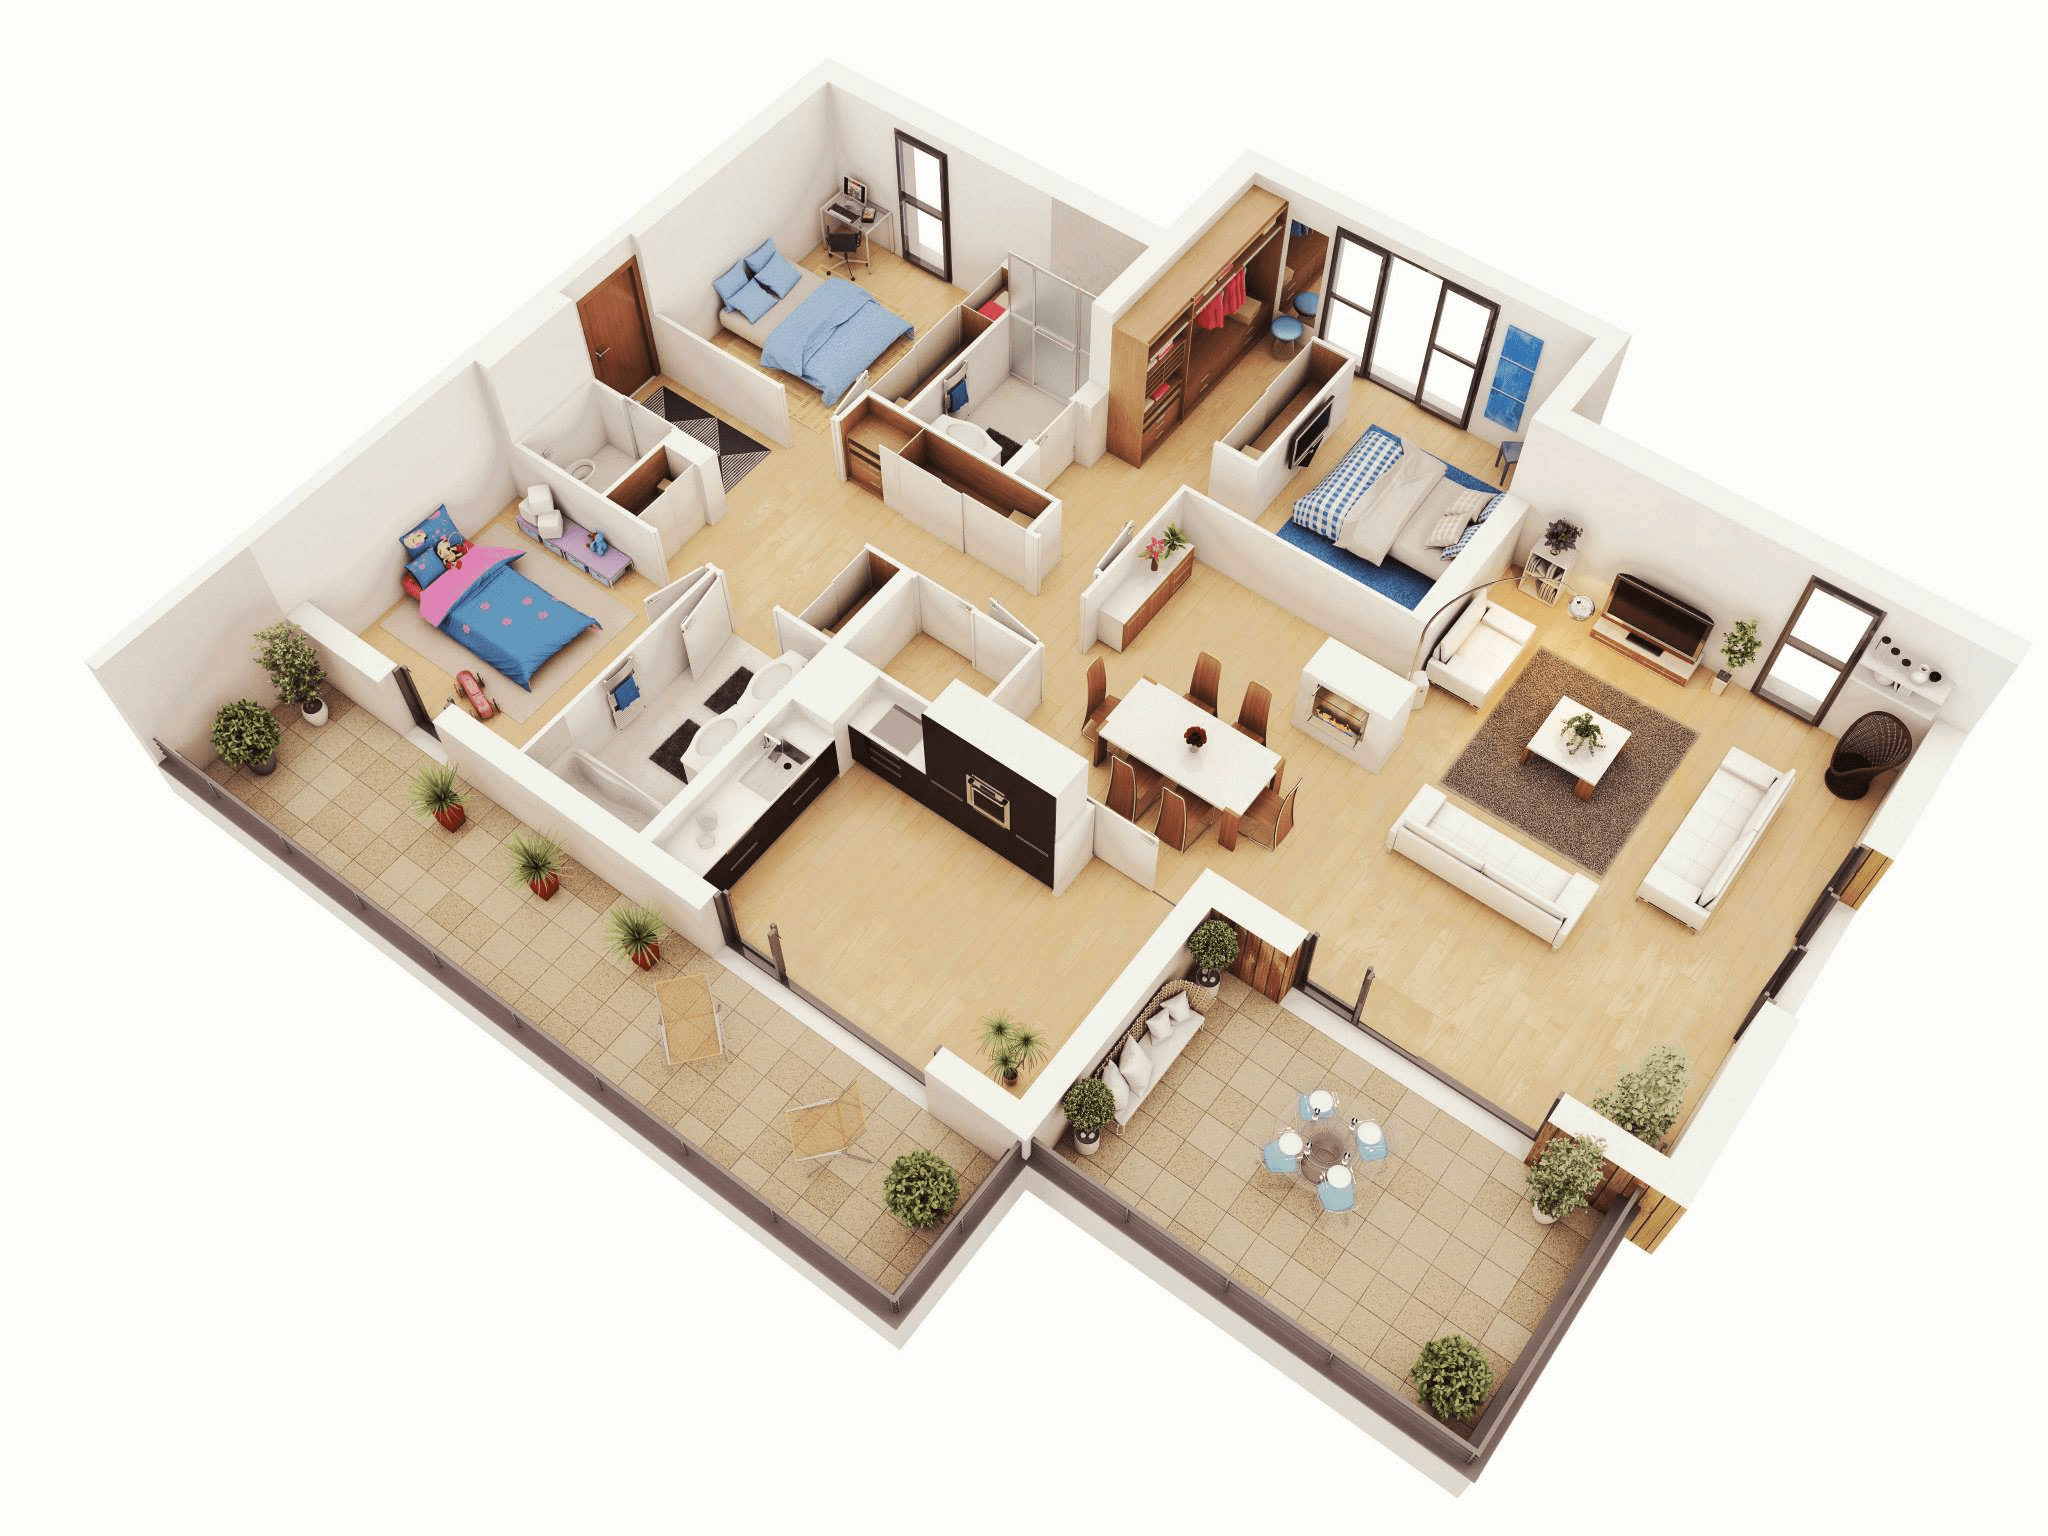 3 Bedroom House With Patio Living Room Floor Plans 3D (Image 2 of 11)